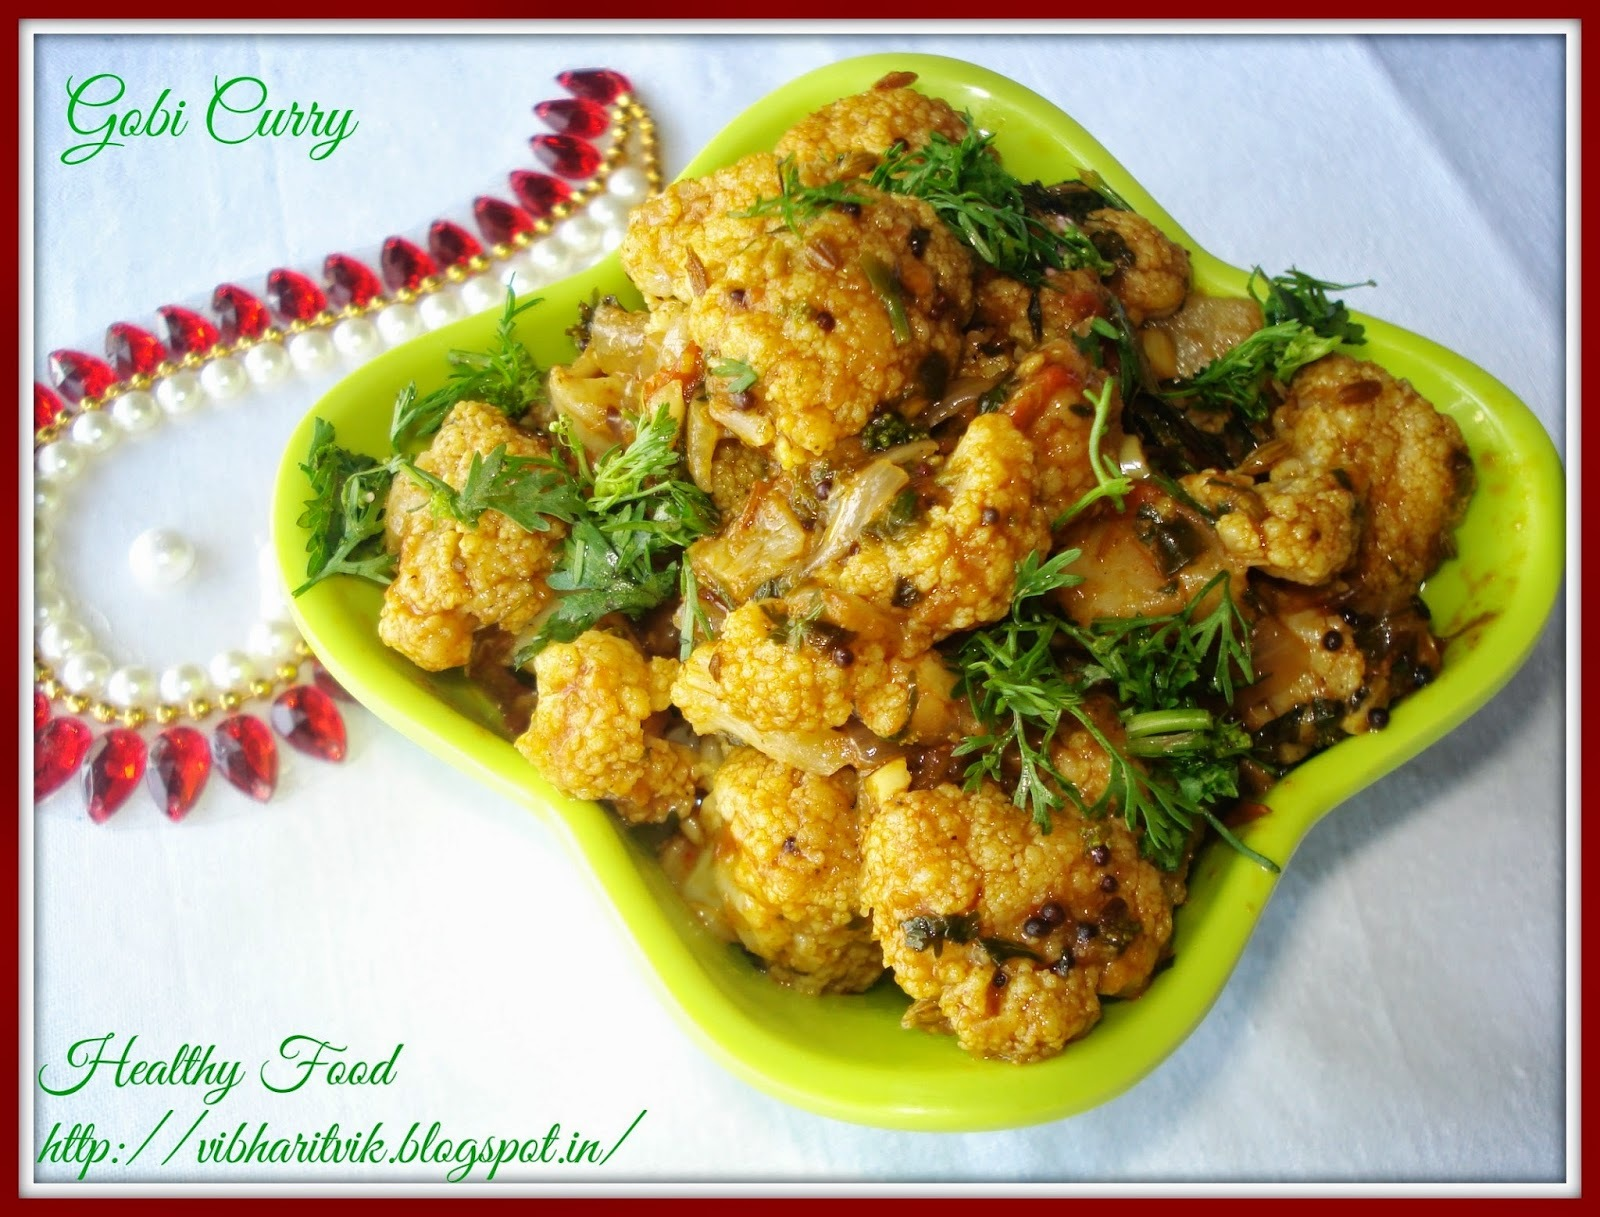 GOBI CURRY / CAULIFLOWER CURRY